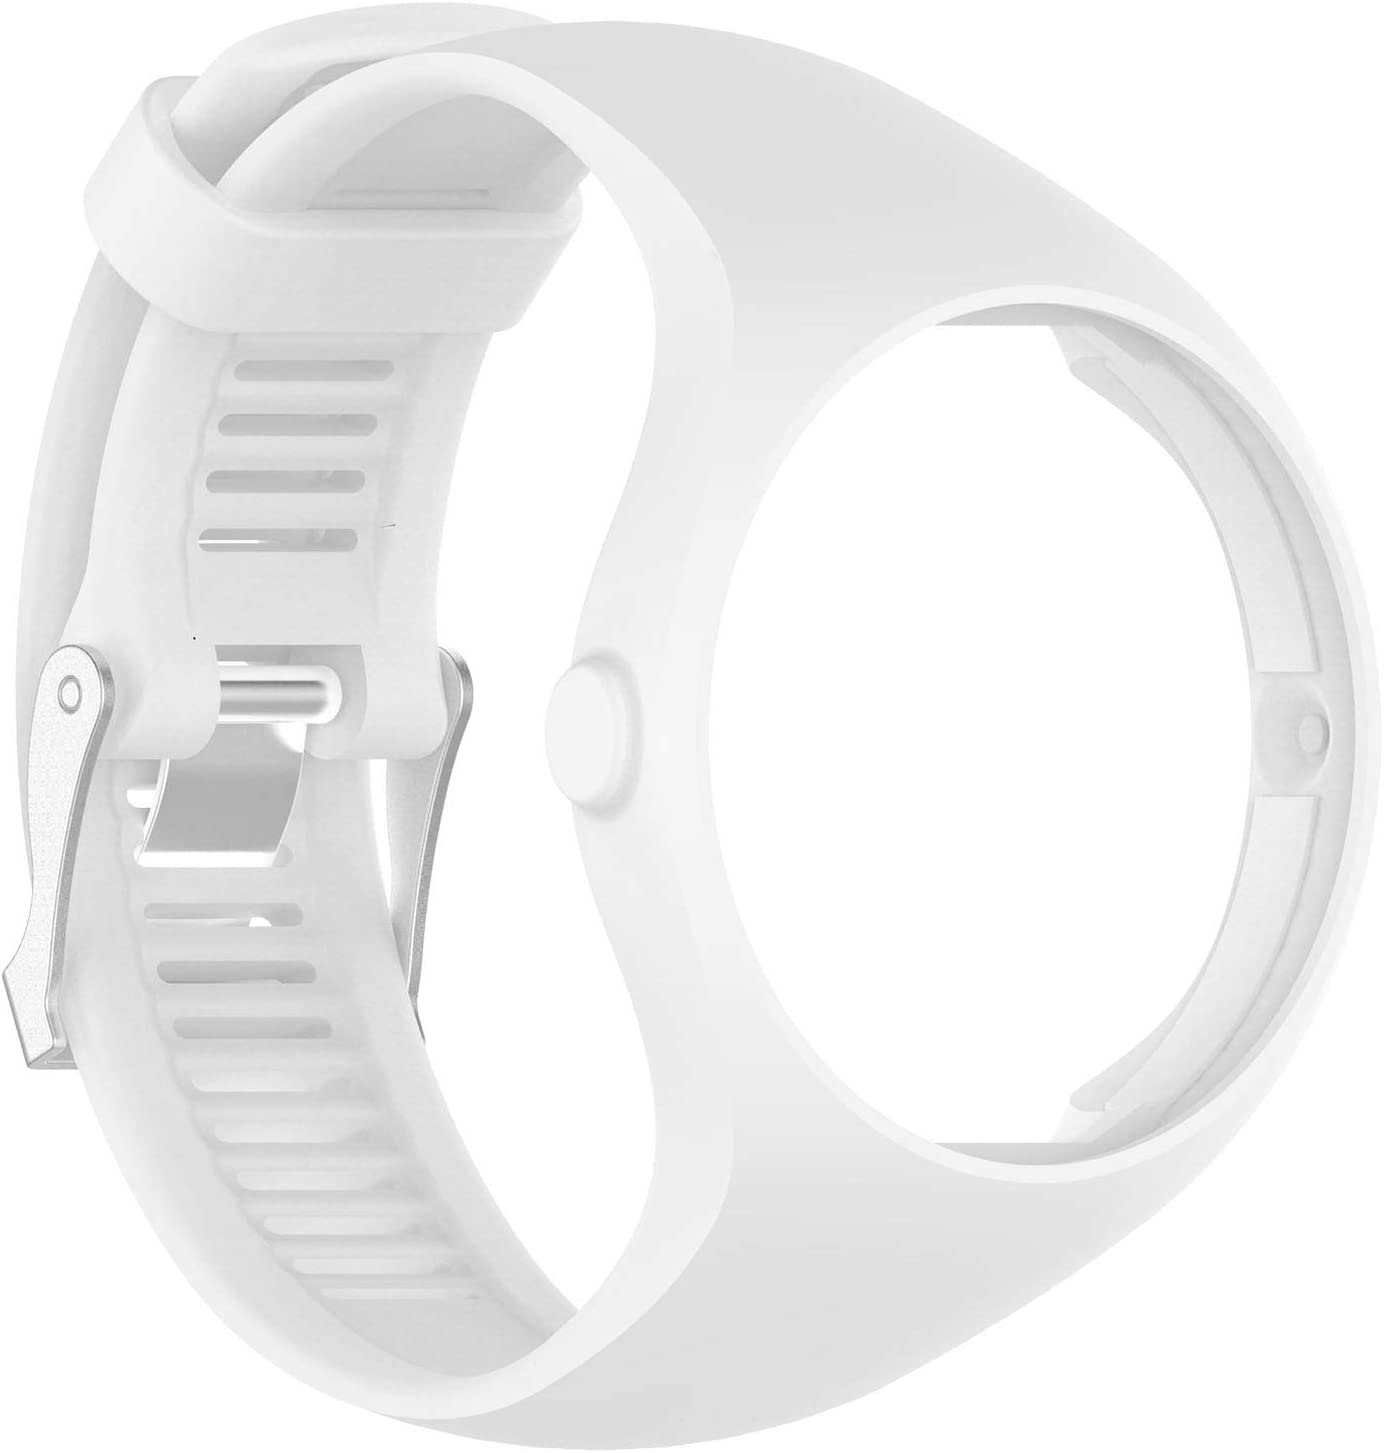 QGHXO Band for Polar M200, Soft Adjustable Silicone Replacement Wrist Watch Band for Polar M200 Watch